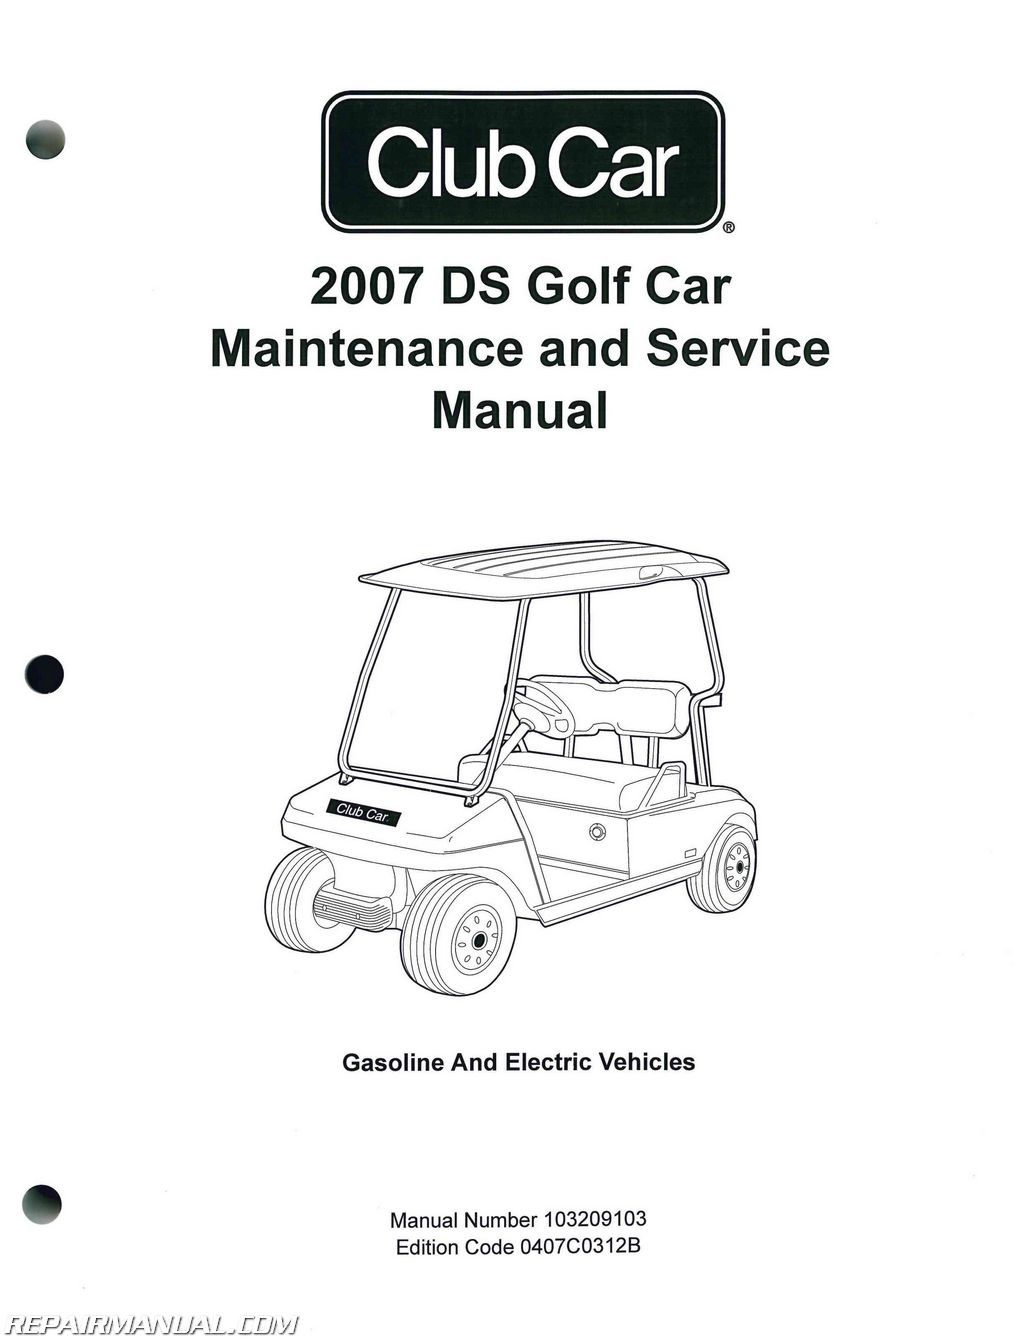 2007 club car ds golf car gas and electric golf cart service manual rh ebay com club car parts list club car parts list